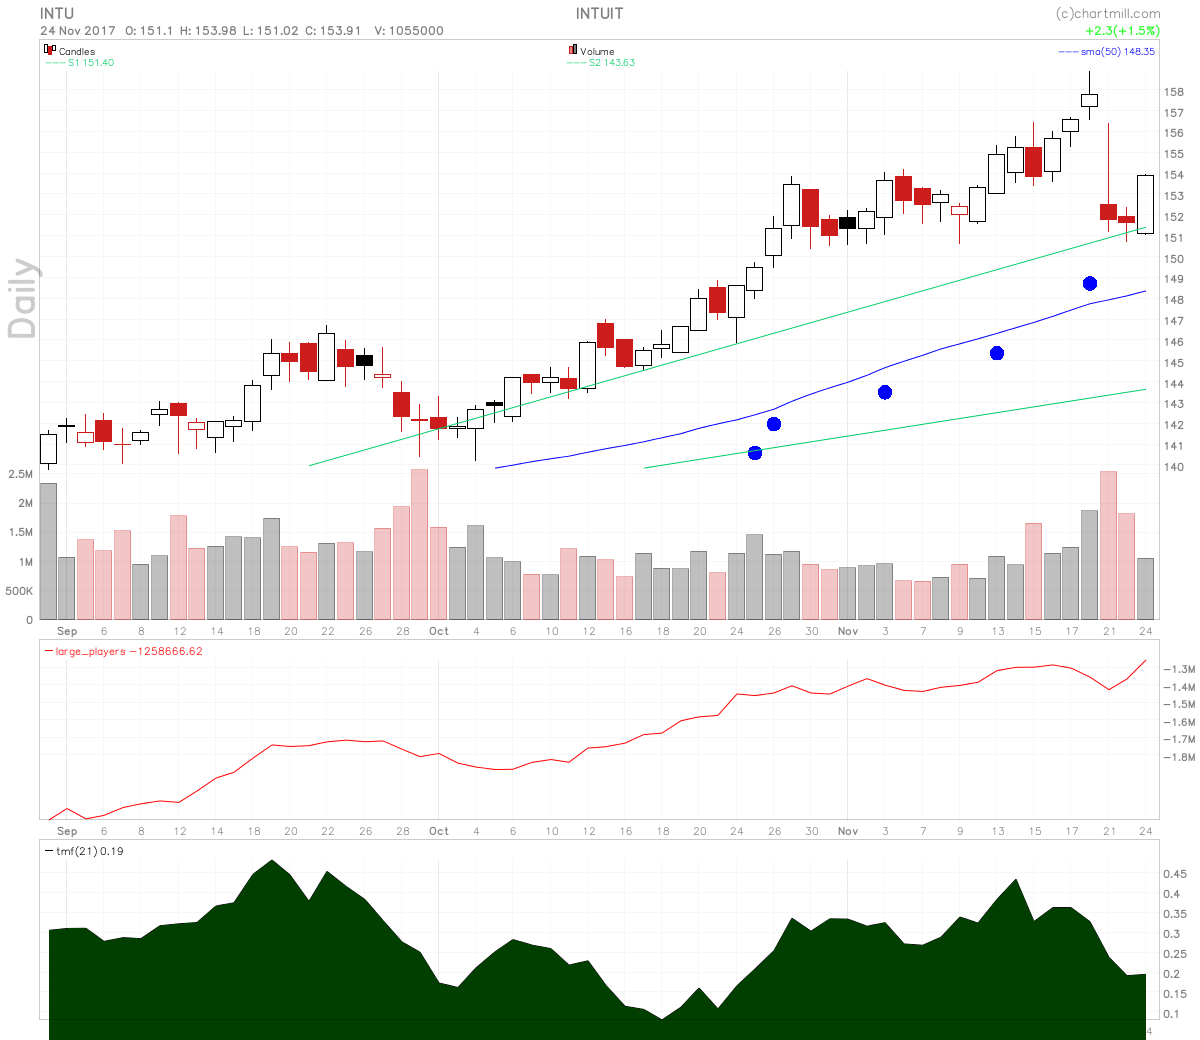 Intuit Stock Does Candle Over Candle On Rising Large Players Volume